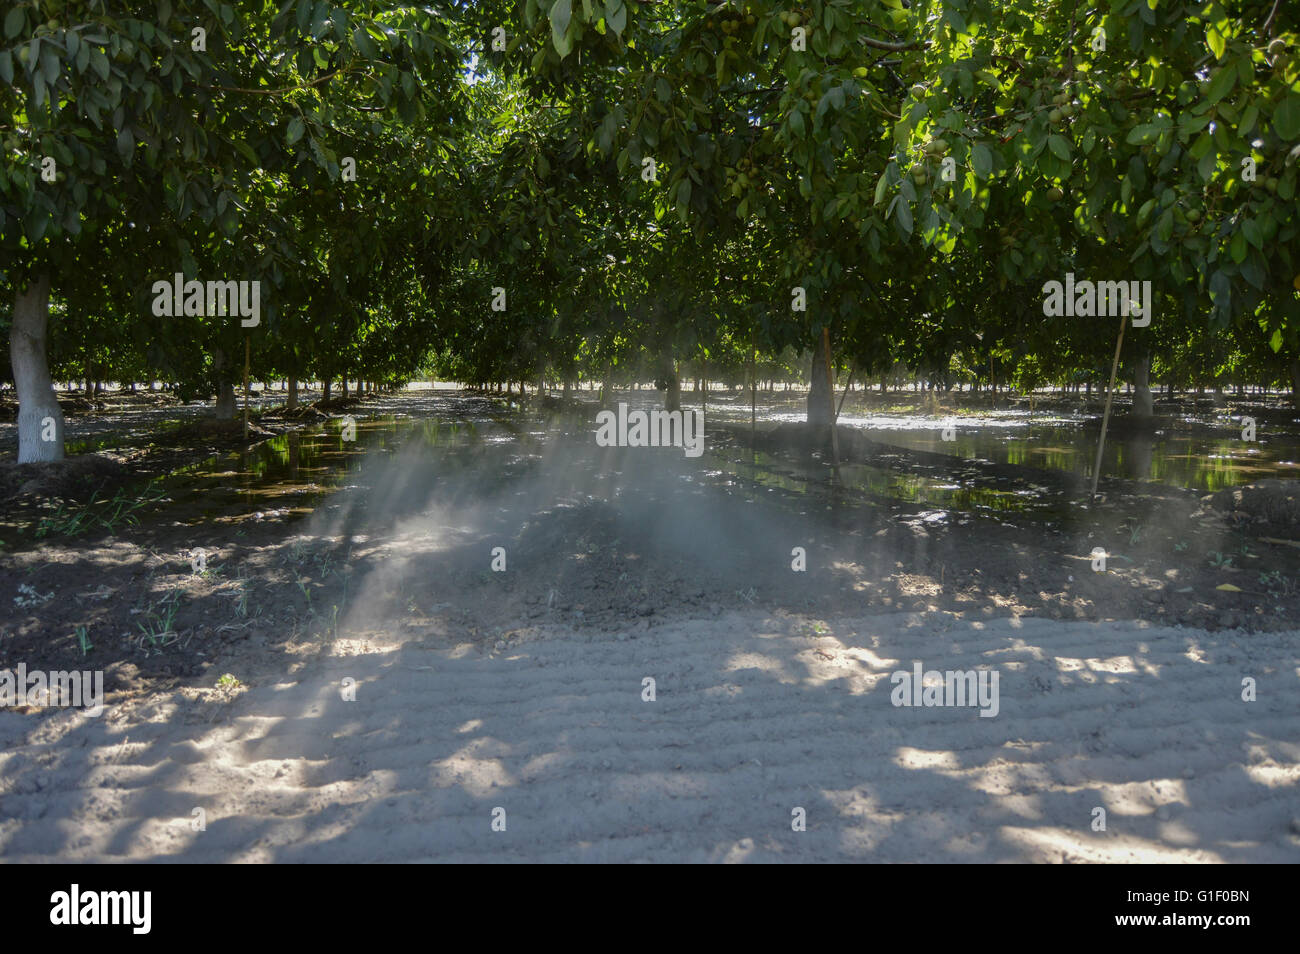 Dusty shaded orchard - Stock Image